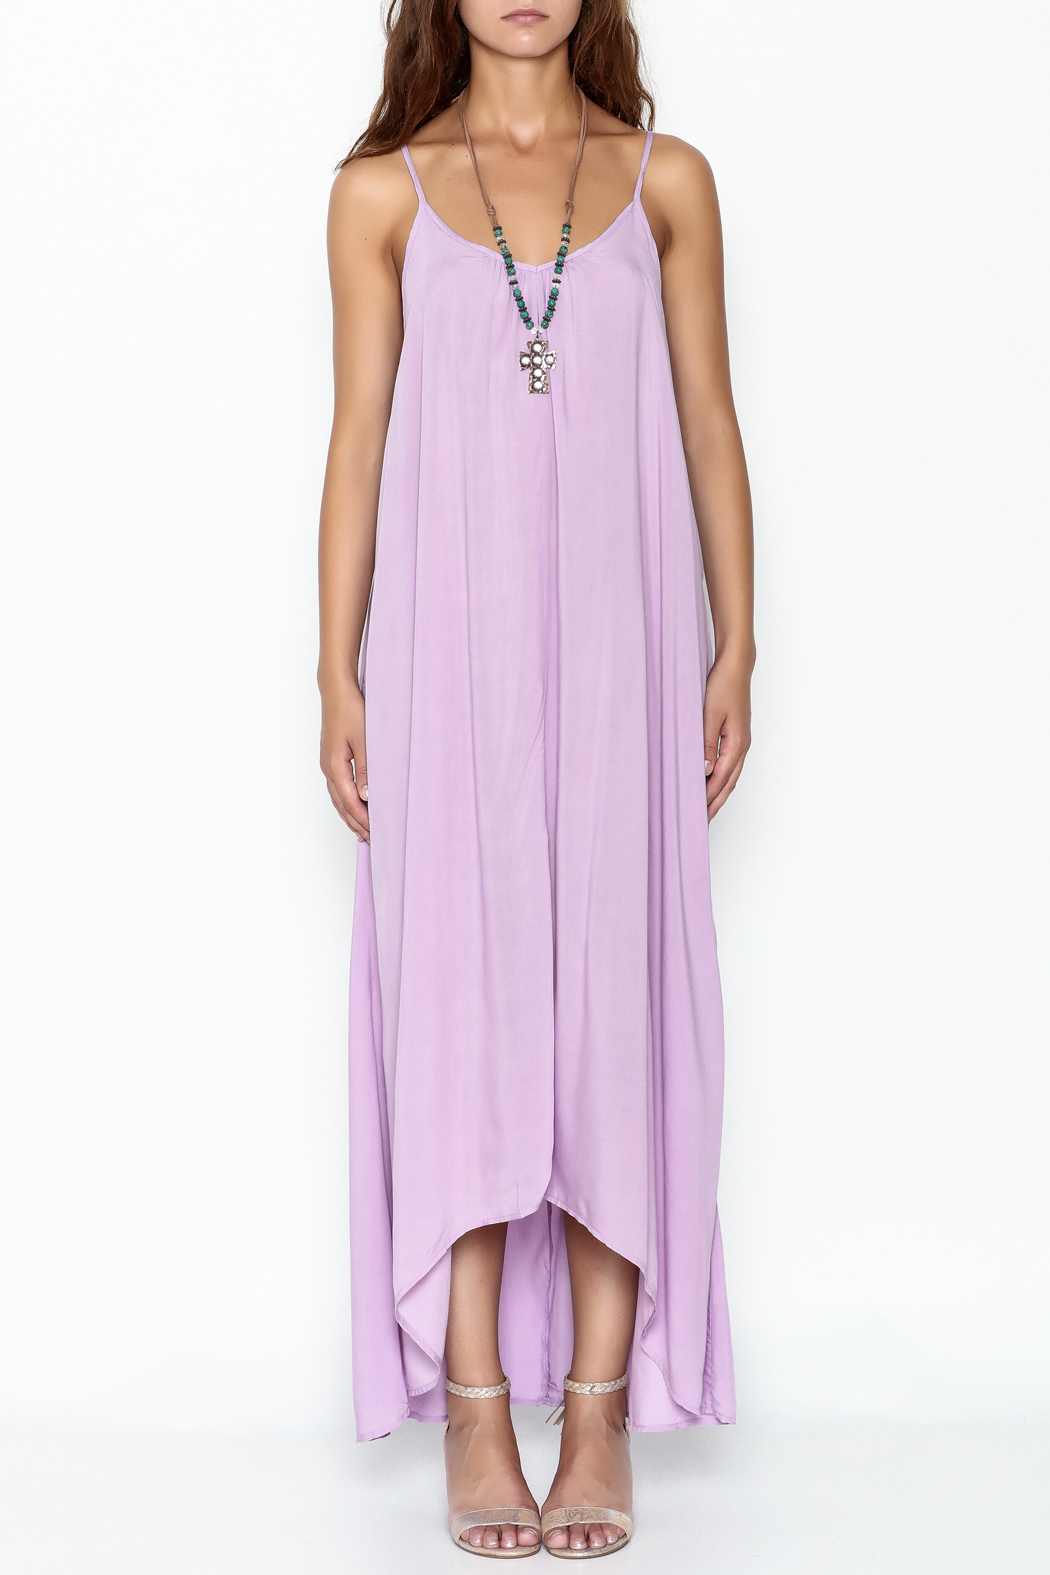 Mustard Seed Lavender Strappy Maxi - Front Full Image